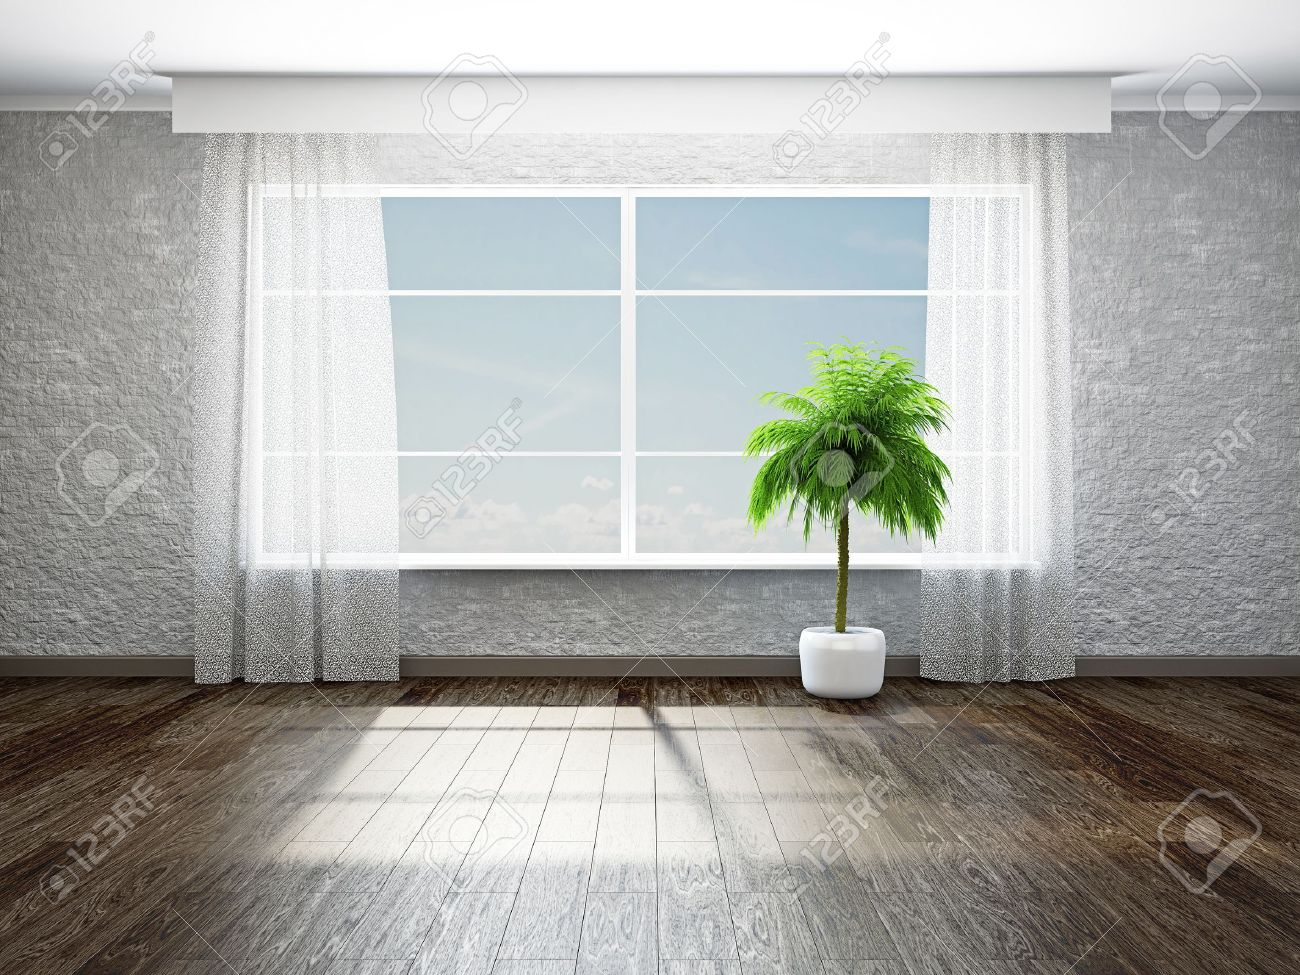 The empty room with plant near the window Stock Photo - 19475492